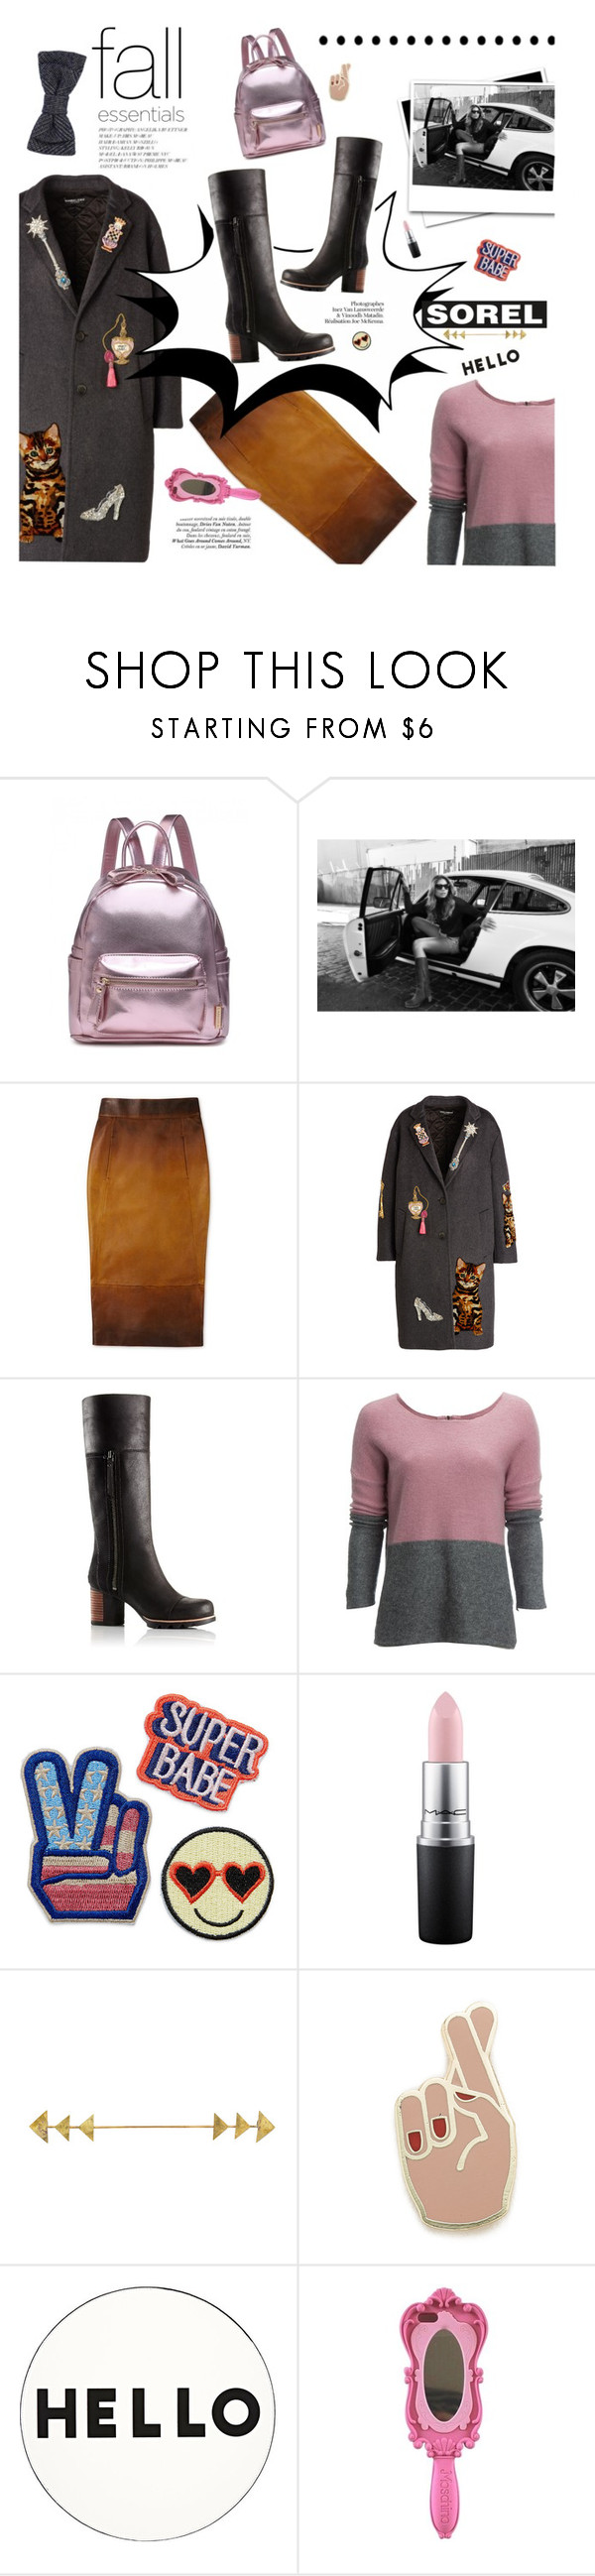 """Kick Up the Leaves (Stylishly) With SOREL"" by malussieversii ❤ liked on Polyvore featuring SOREL, Dolce&Gabbana, Carve Designs, MAC Cosmetics, Georgia Perry, Lisa Perry and Moschino"